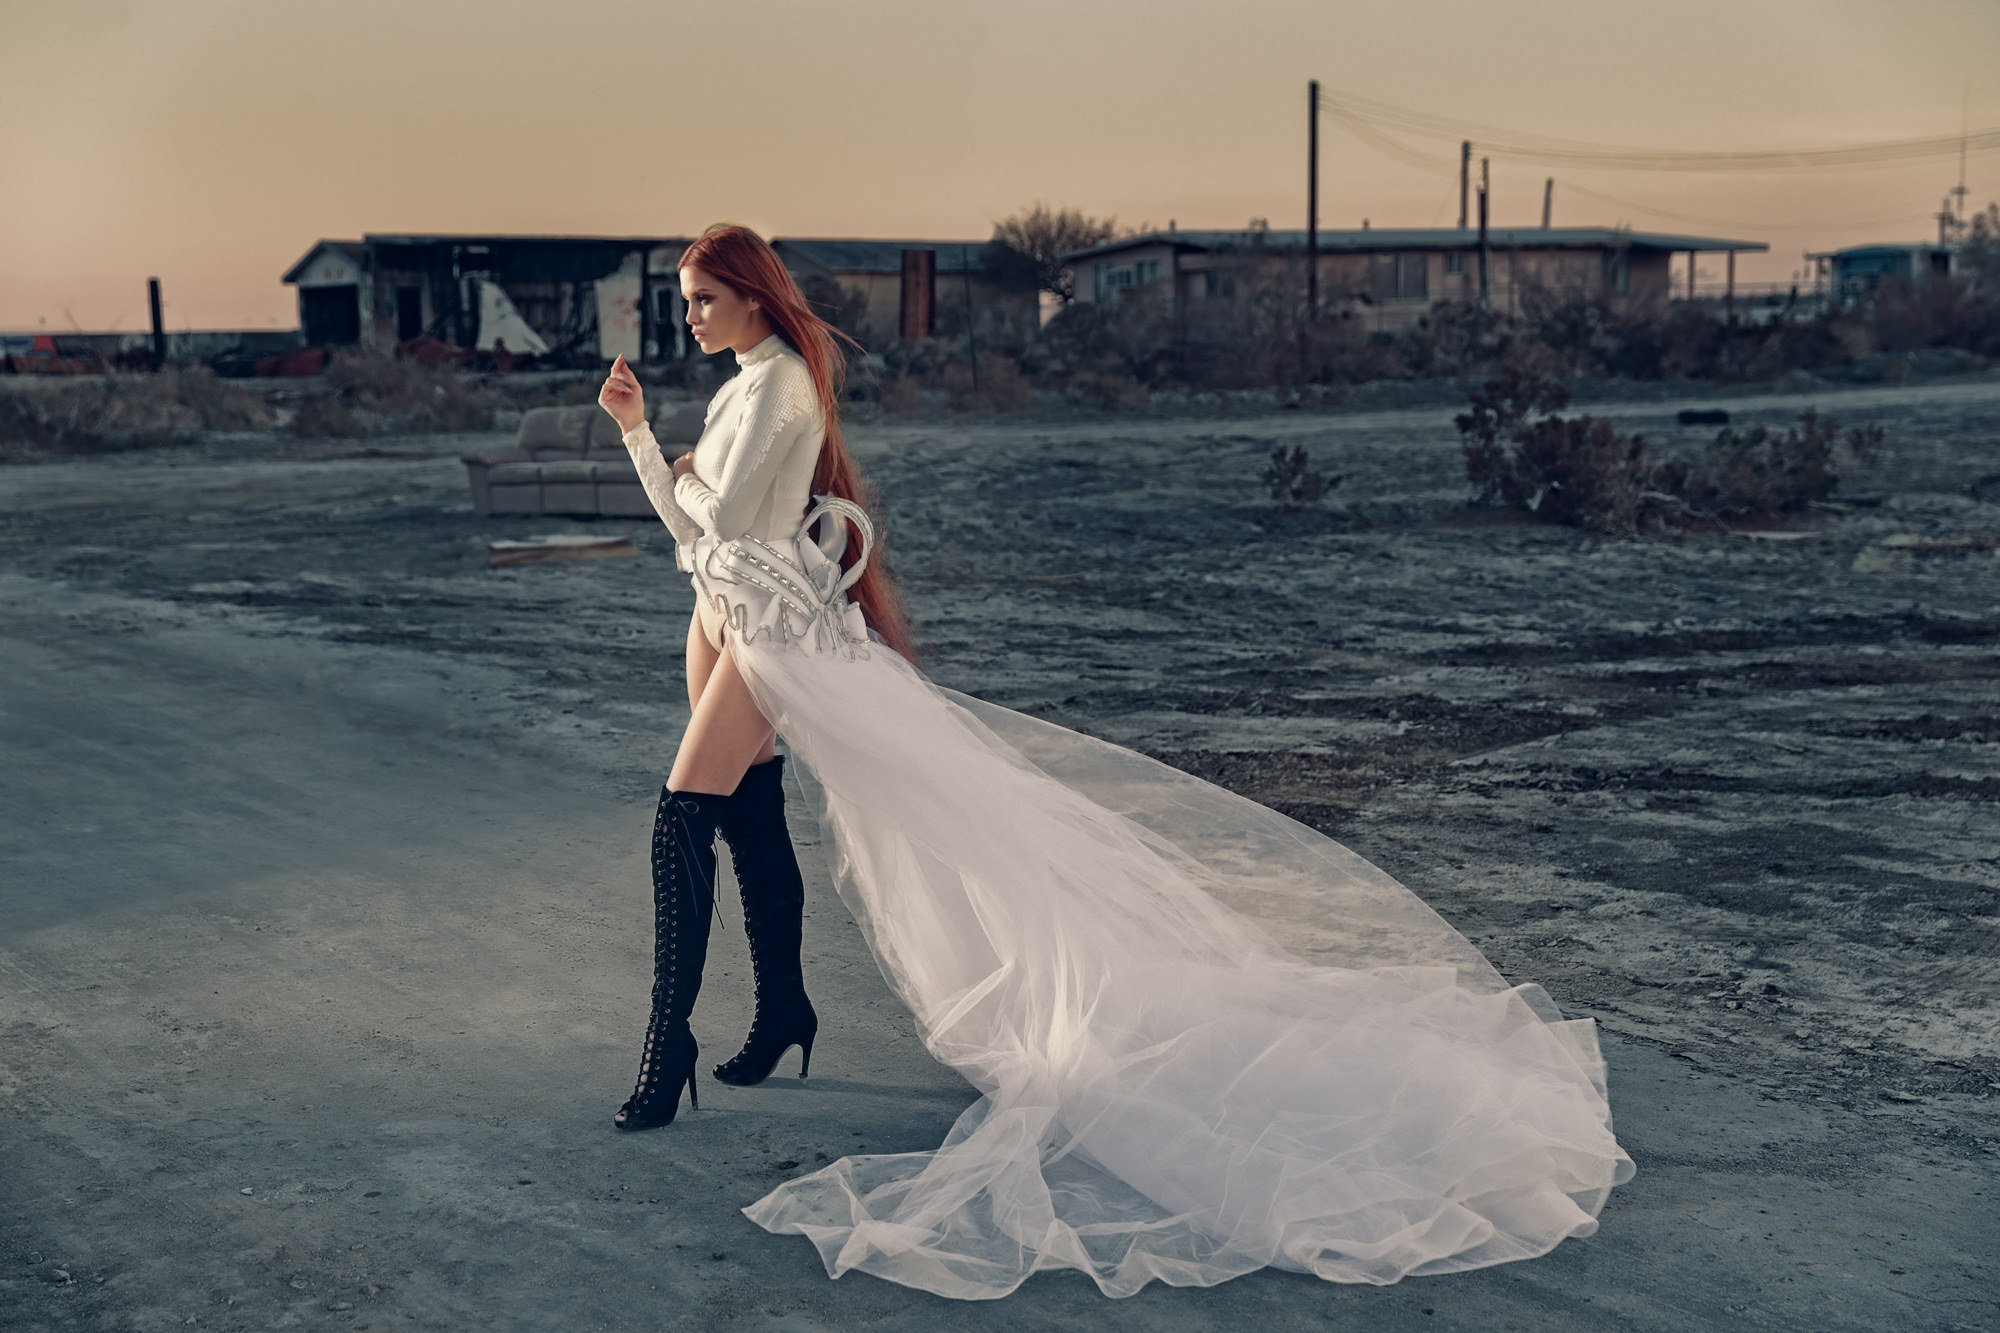 Bride in long tulle train and silver body suit  - Roberto Valenzuela Weddings